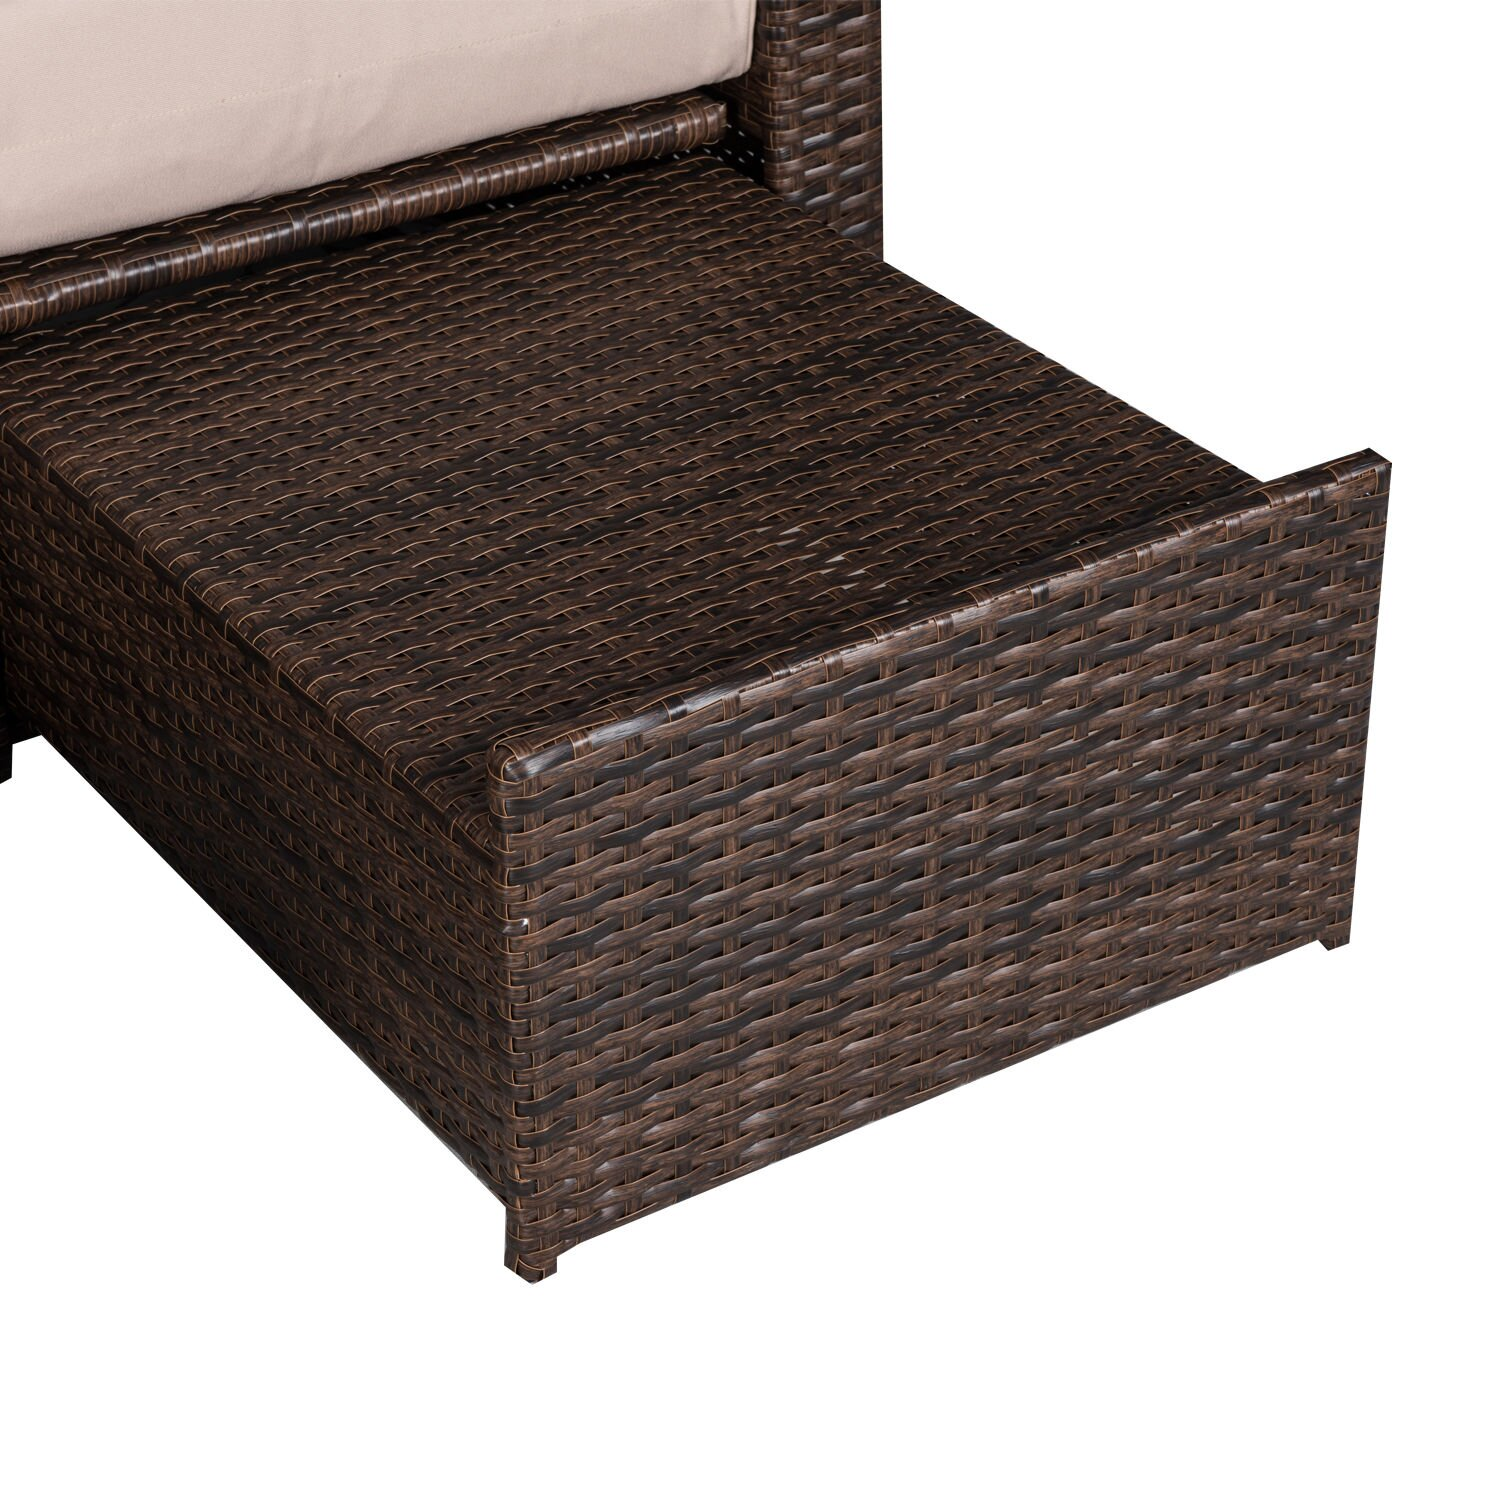 Darby Home Co Americana 3 Piece Outdoor Rattan Wicker Chaise Lounge